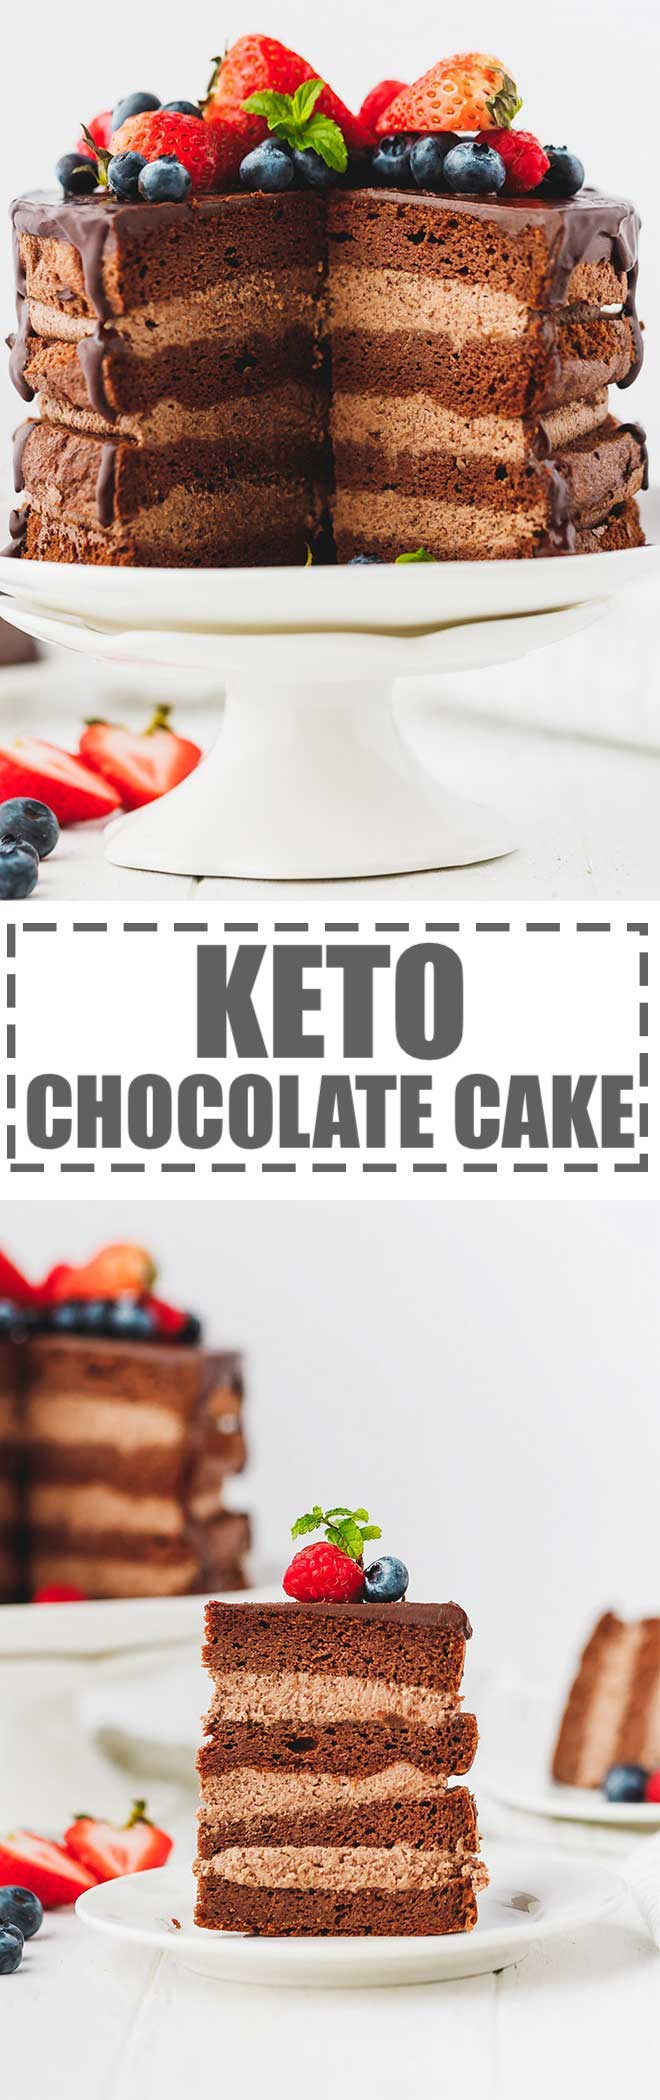 This Keto Chocolate Cake is low-carb, gluten-free, sugar-free and flourless. Very moist and chocolatey cake layers with a creamy chocolate mascarpone filling in between. Small 6-inch cake that is easy to make and great for parties. Mug cake option available, too. #ketocake #ketodessert #ketochocolate #chocolatecake